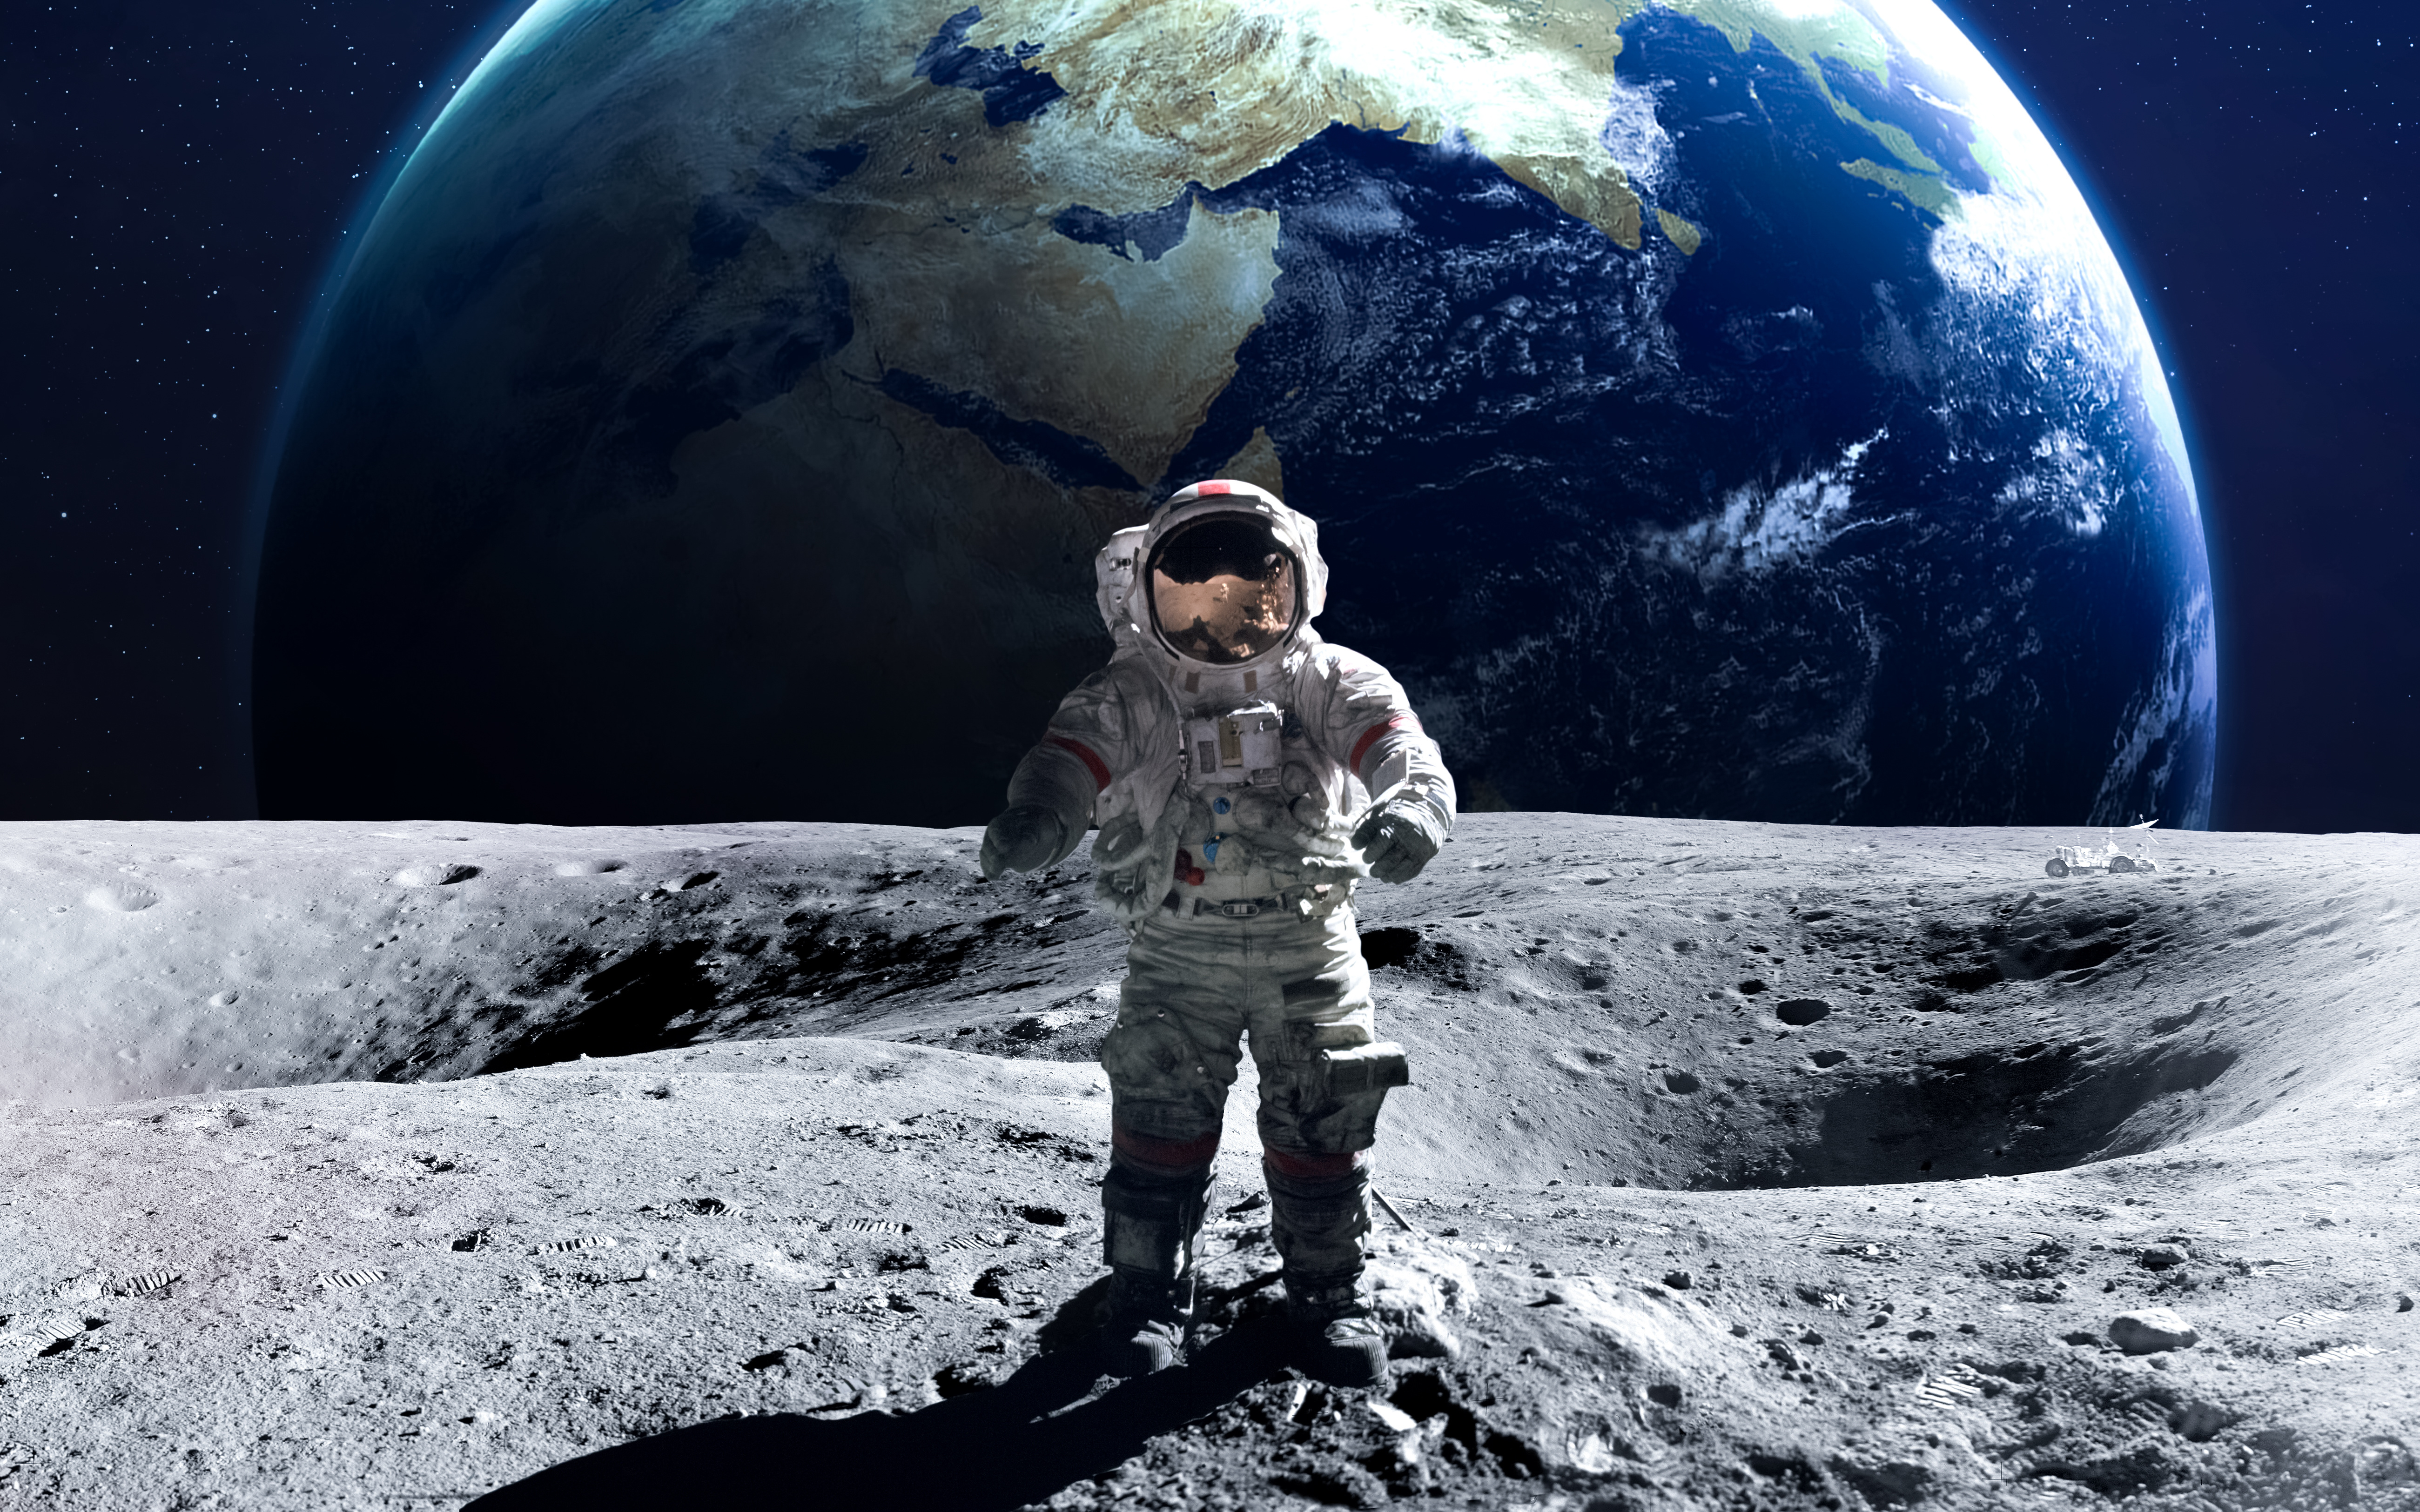 Should we return to the Moon?